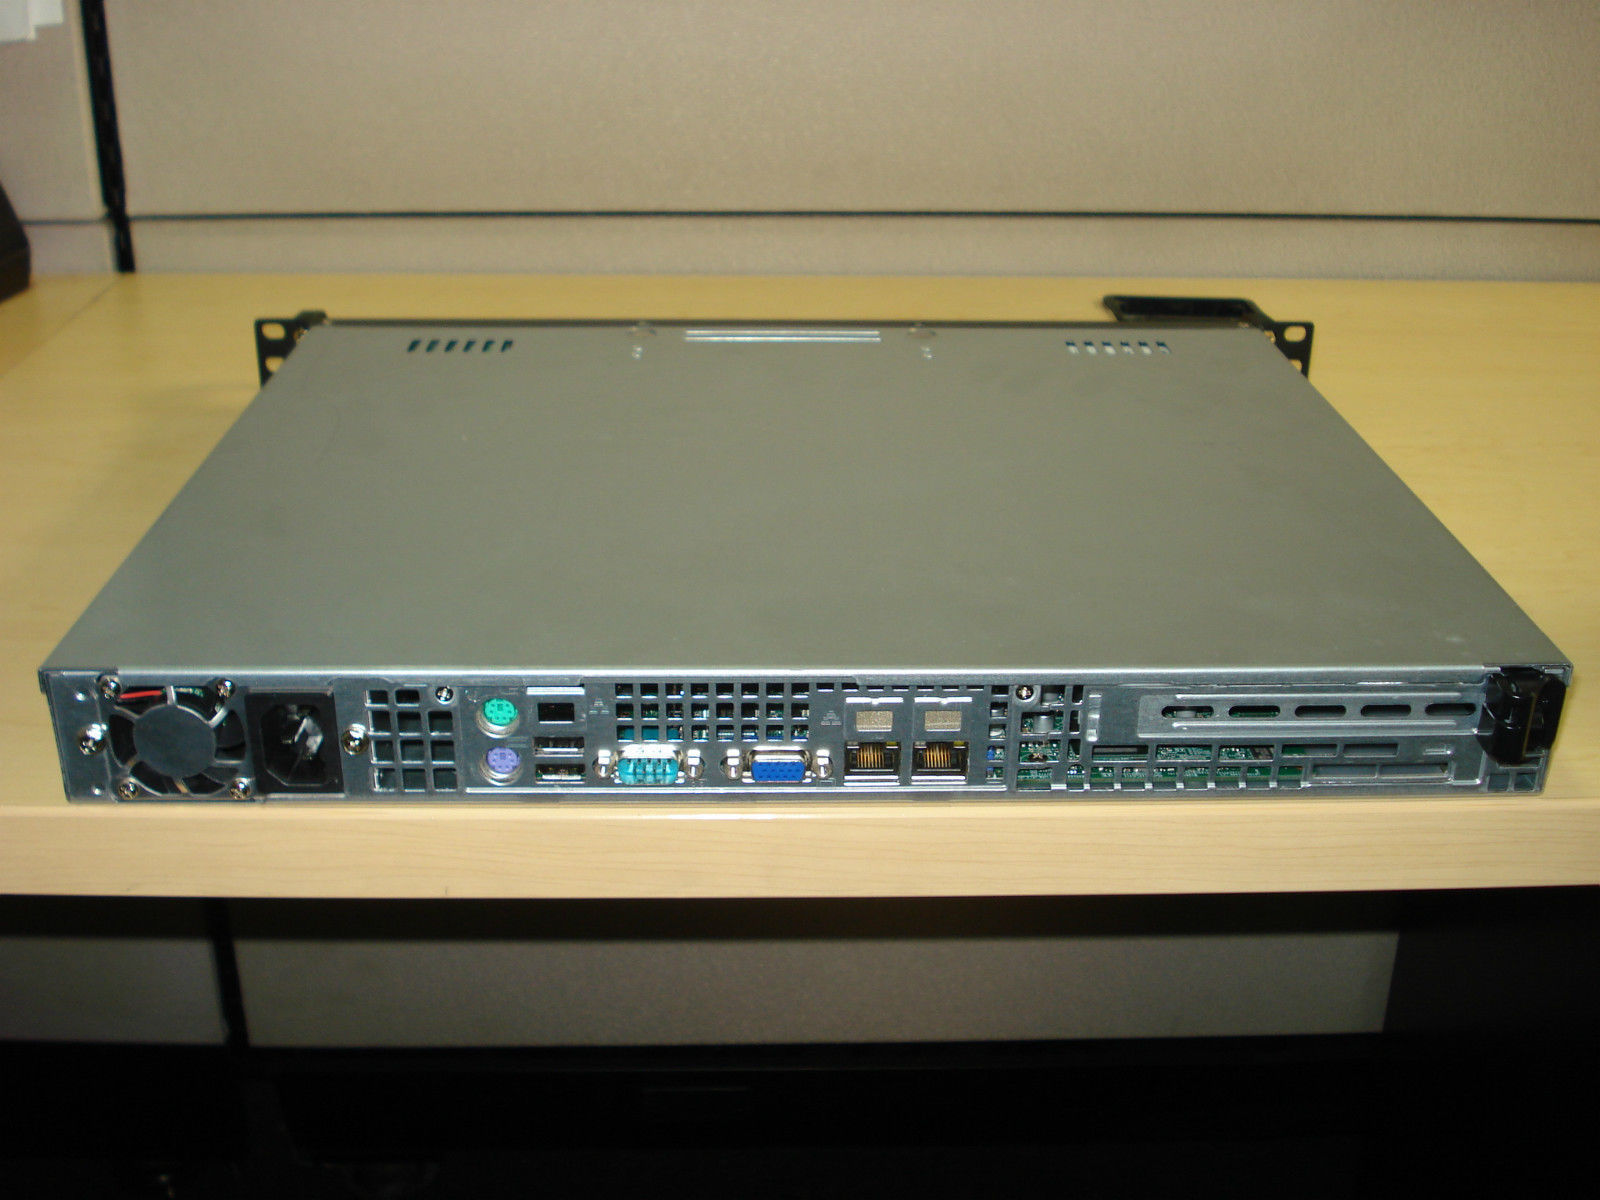 SUPERMICRO 1U - CSE 512-260B CHASSIS W/ SUPERMICRO MOTHERBOARD(X9SCL